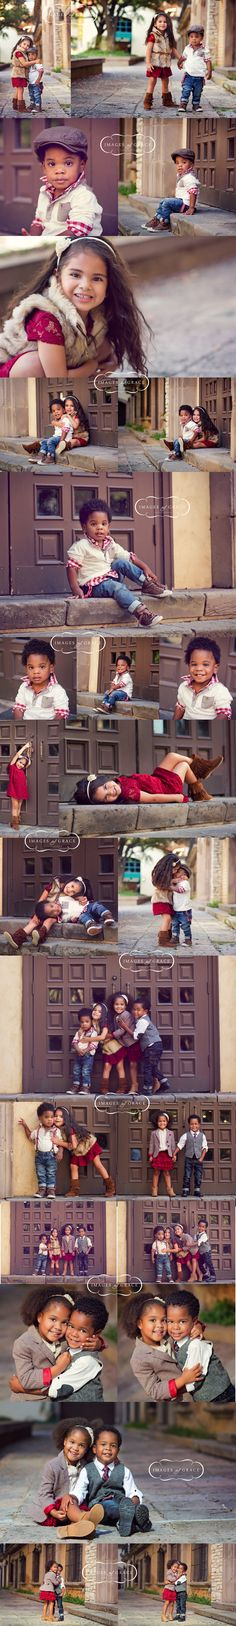 Aww.......such cute kids! Family Photo Session Ideas | Props | Prop | Child Photography | Clothing Inspiration| Fashion | Pose Idea | Poses | Siblings | Cousins